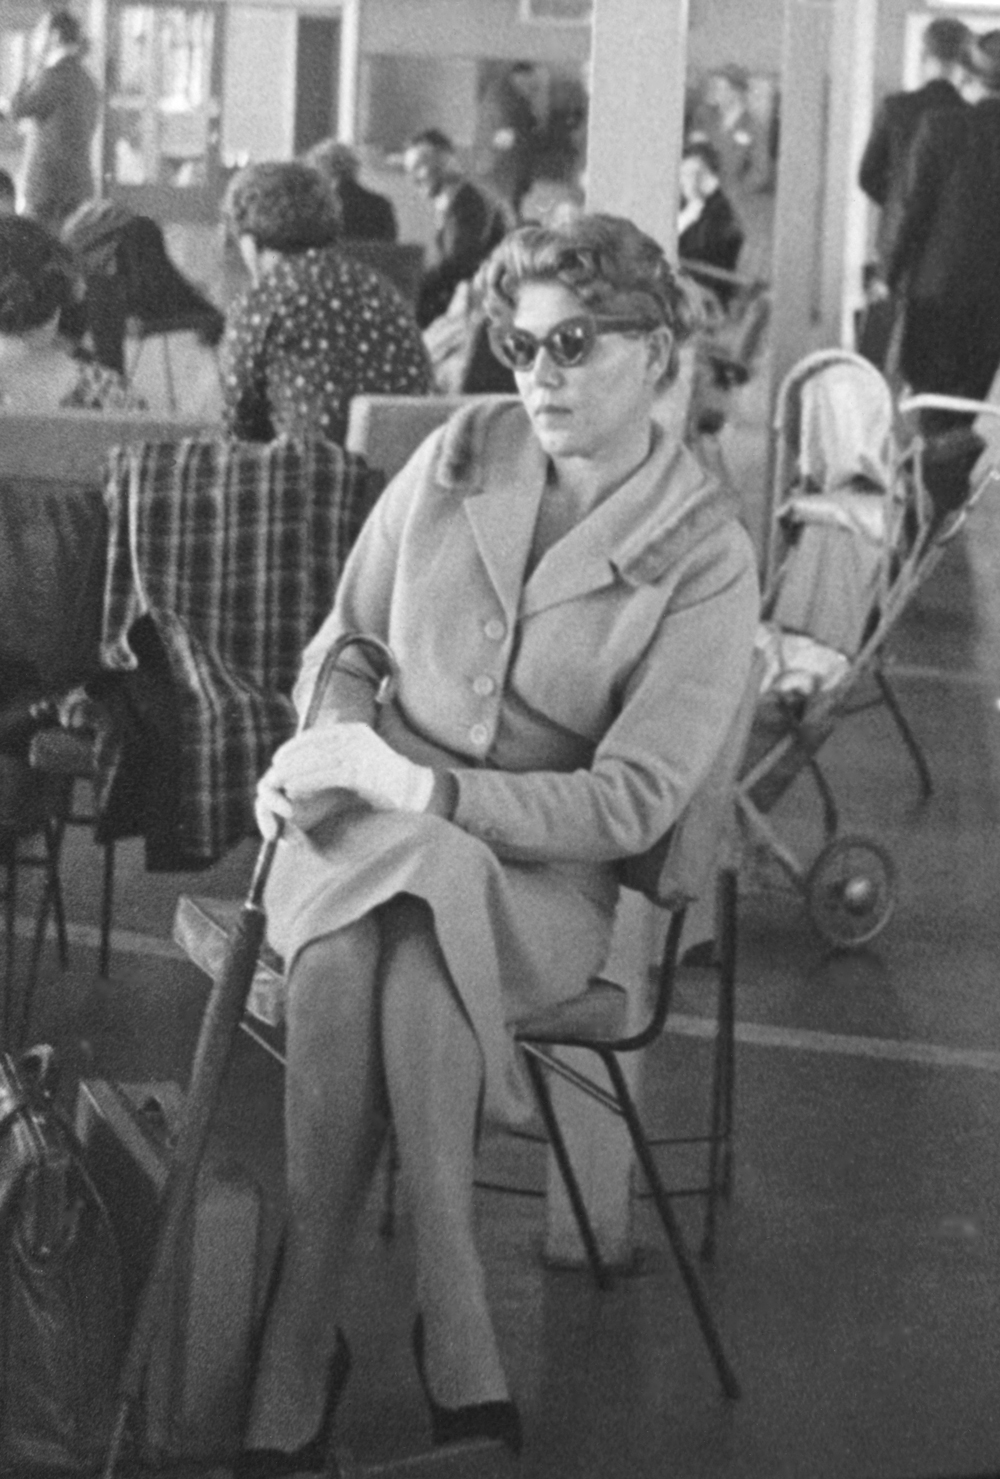 ASIO surveillance photograph of Lydia Janovska at Mascot Airport, Sydney, 1960.